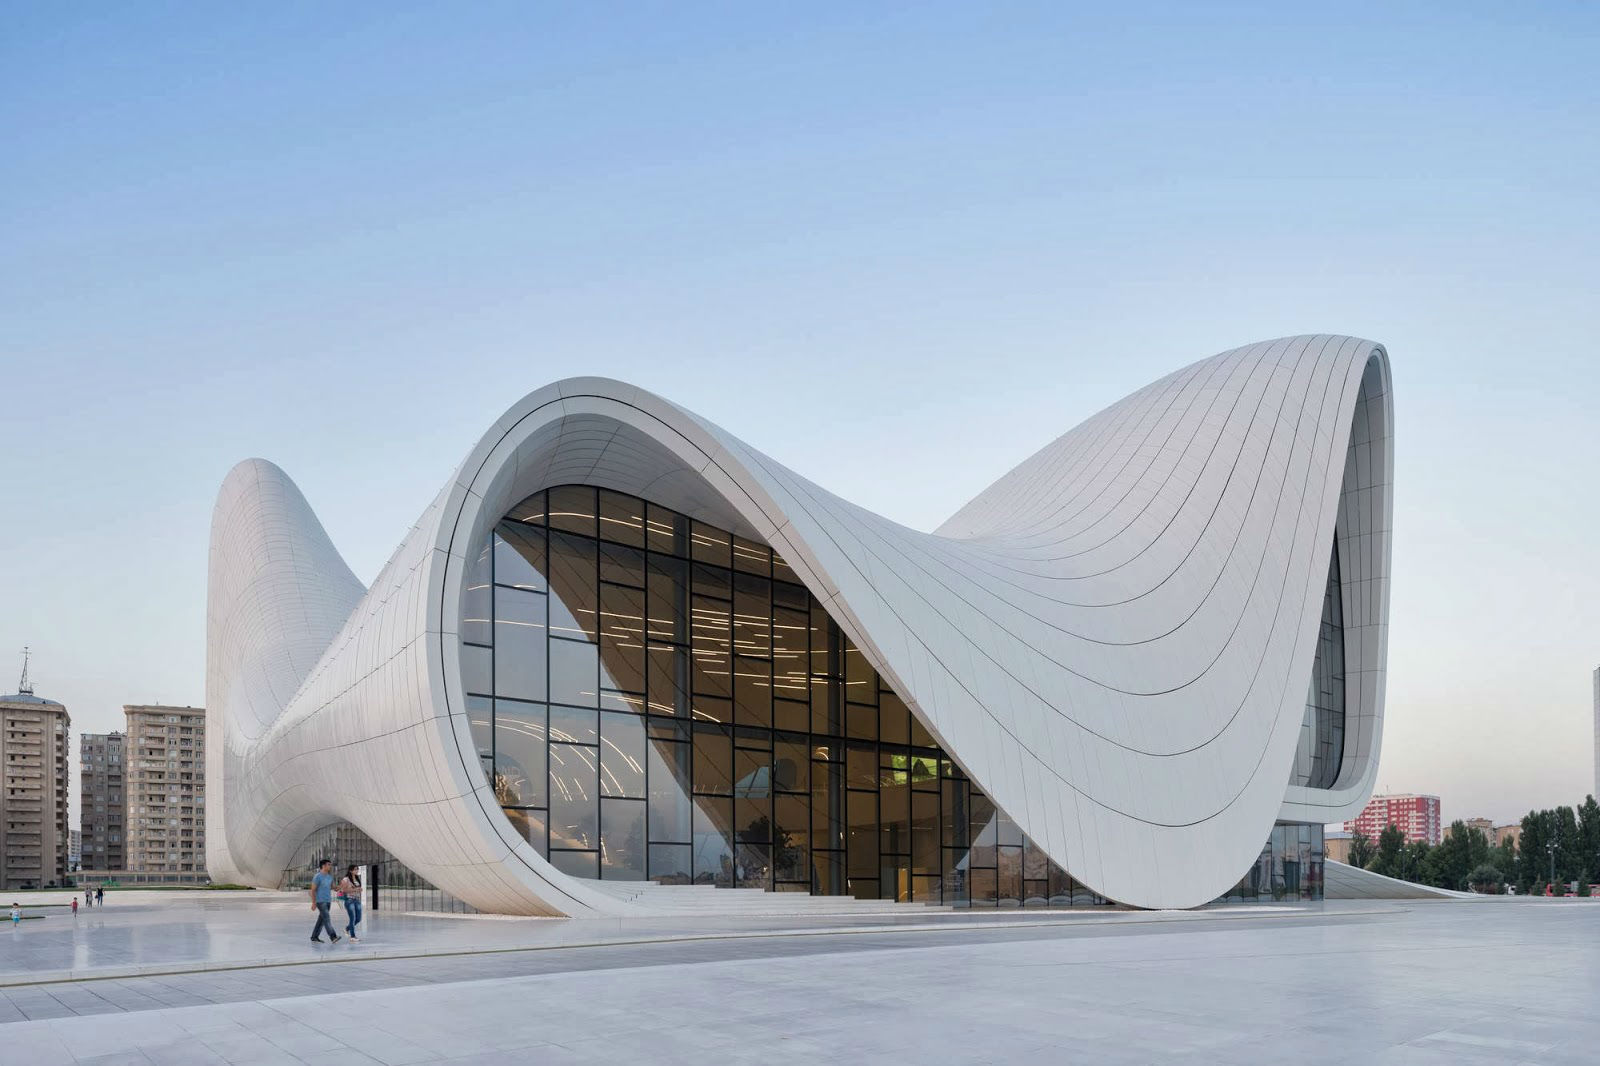 Arch2o-Zaha-Hadid-Architects-Wins-Designs-of-the-Year-Prize-002.jpg